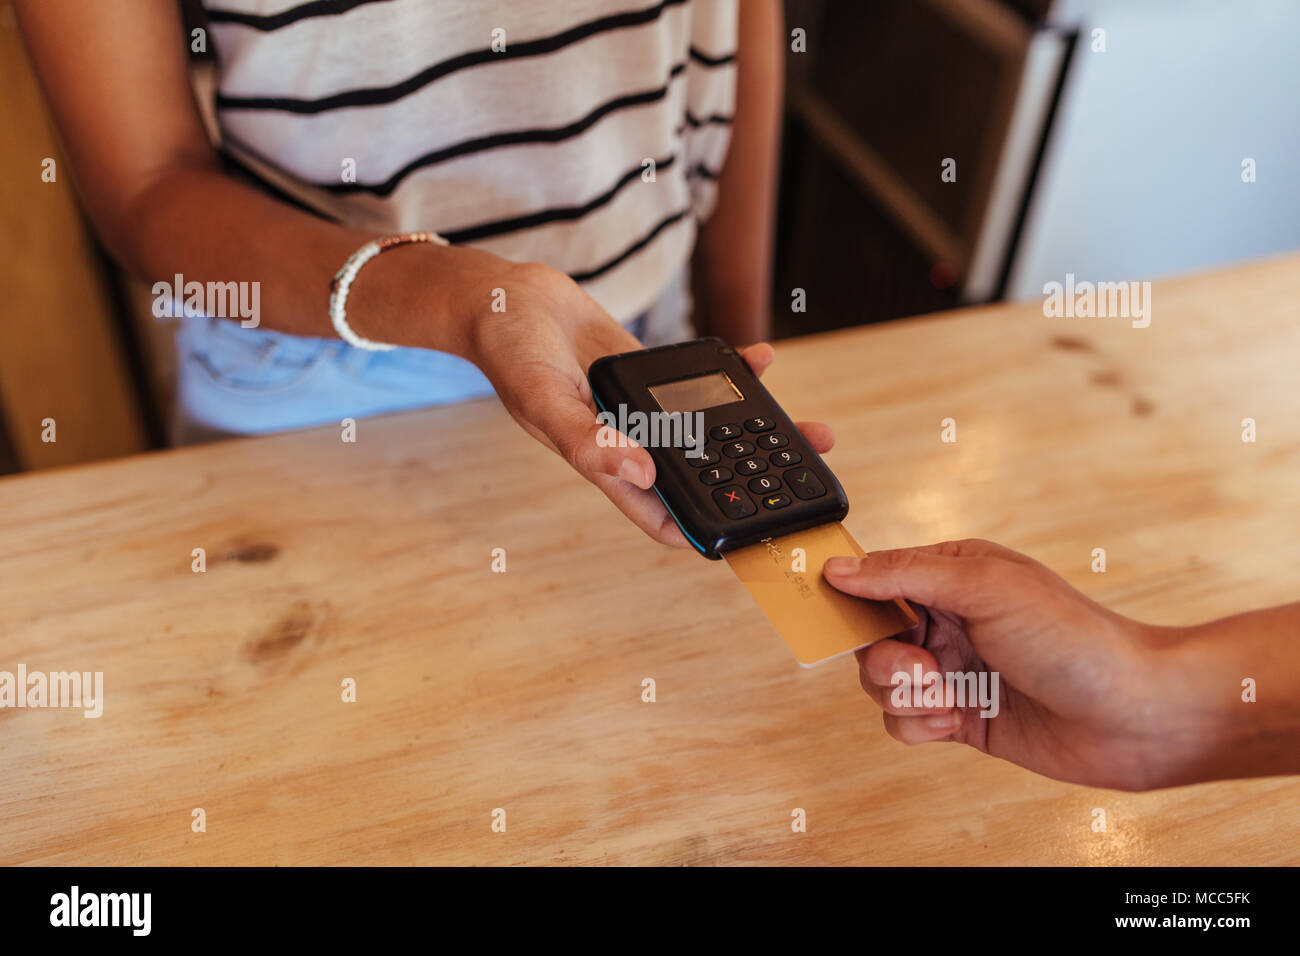 Woman entrepreneur using a wireless point of sale machine to effect a cashless payment. Close up of a woman holding a wireless point of sale machine w - Stock Image